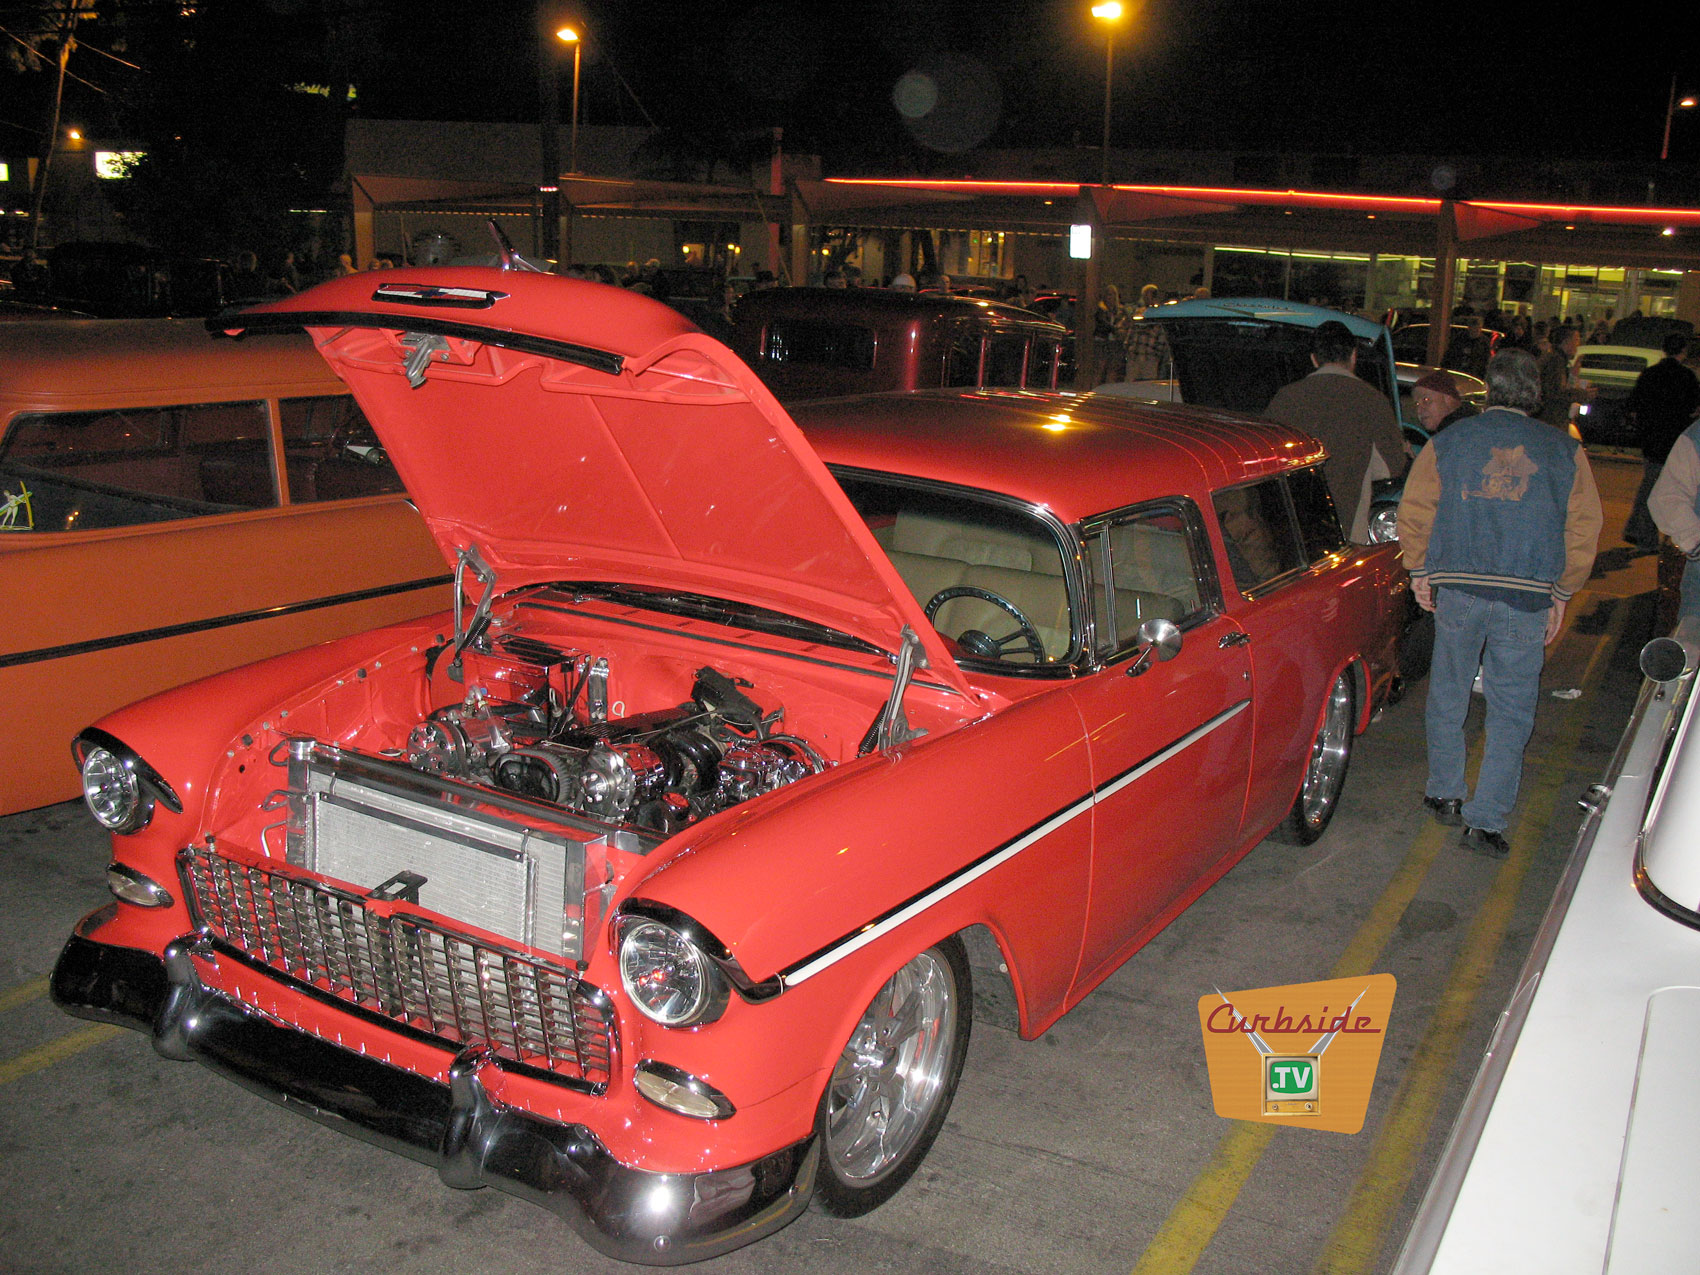 1956-Chevy-Nomad-at-Bobs-Big-Boy.jpg